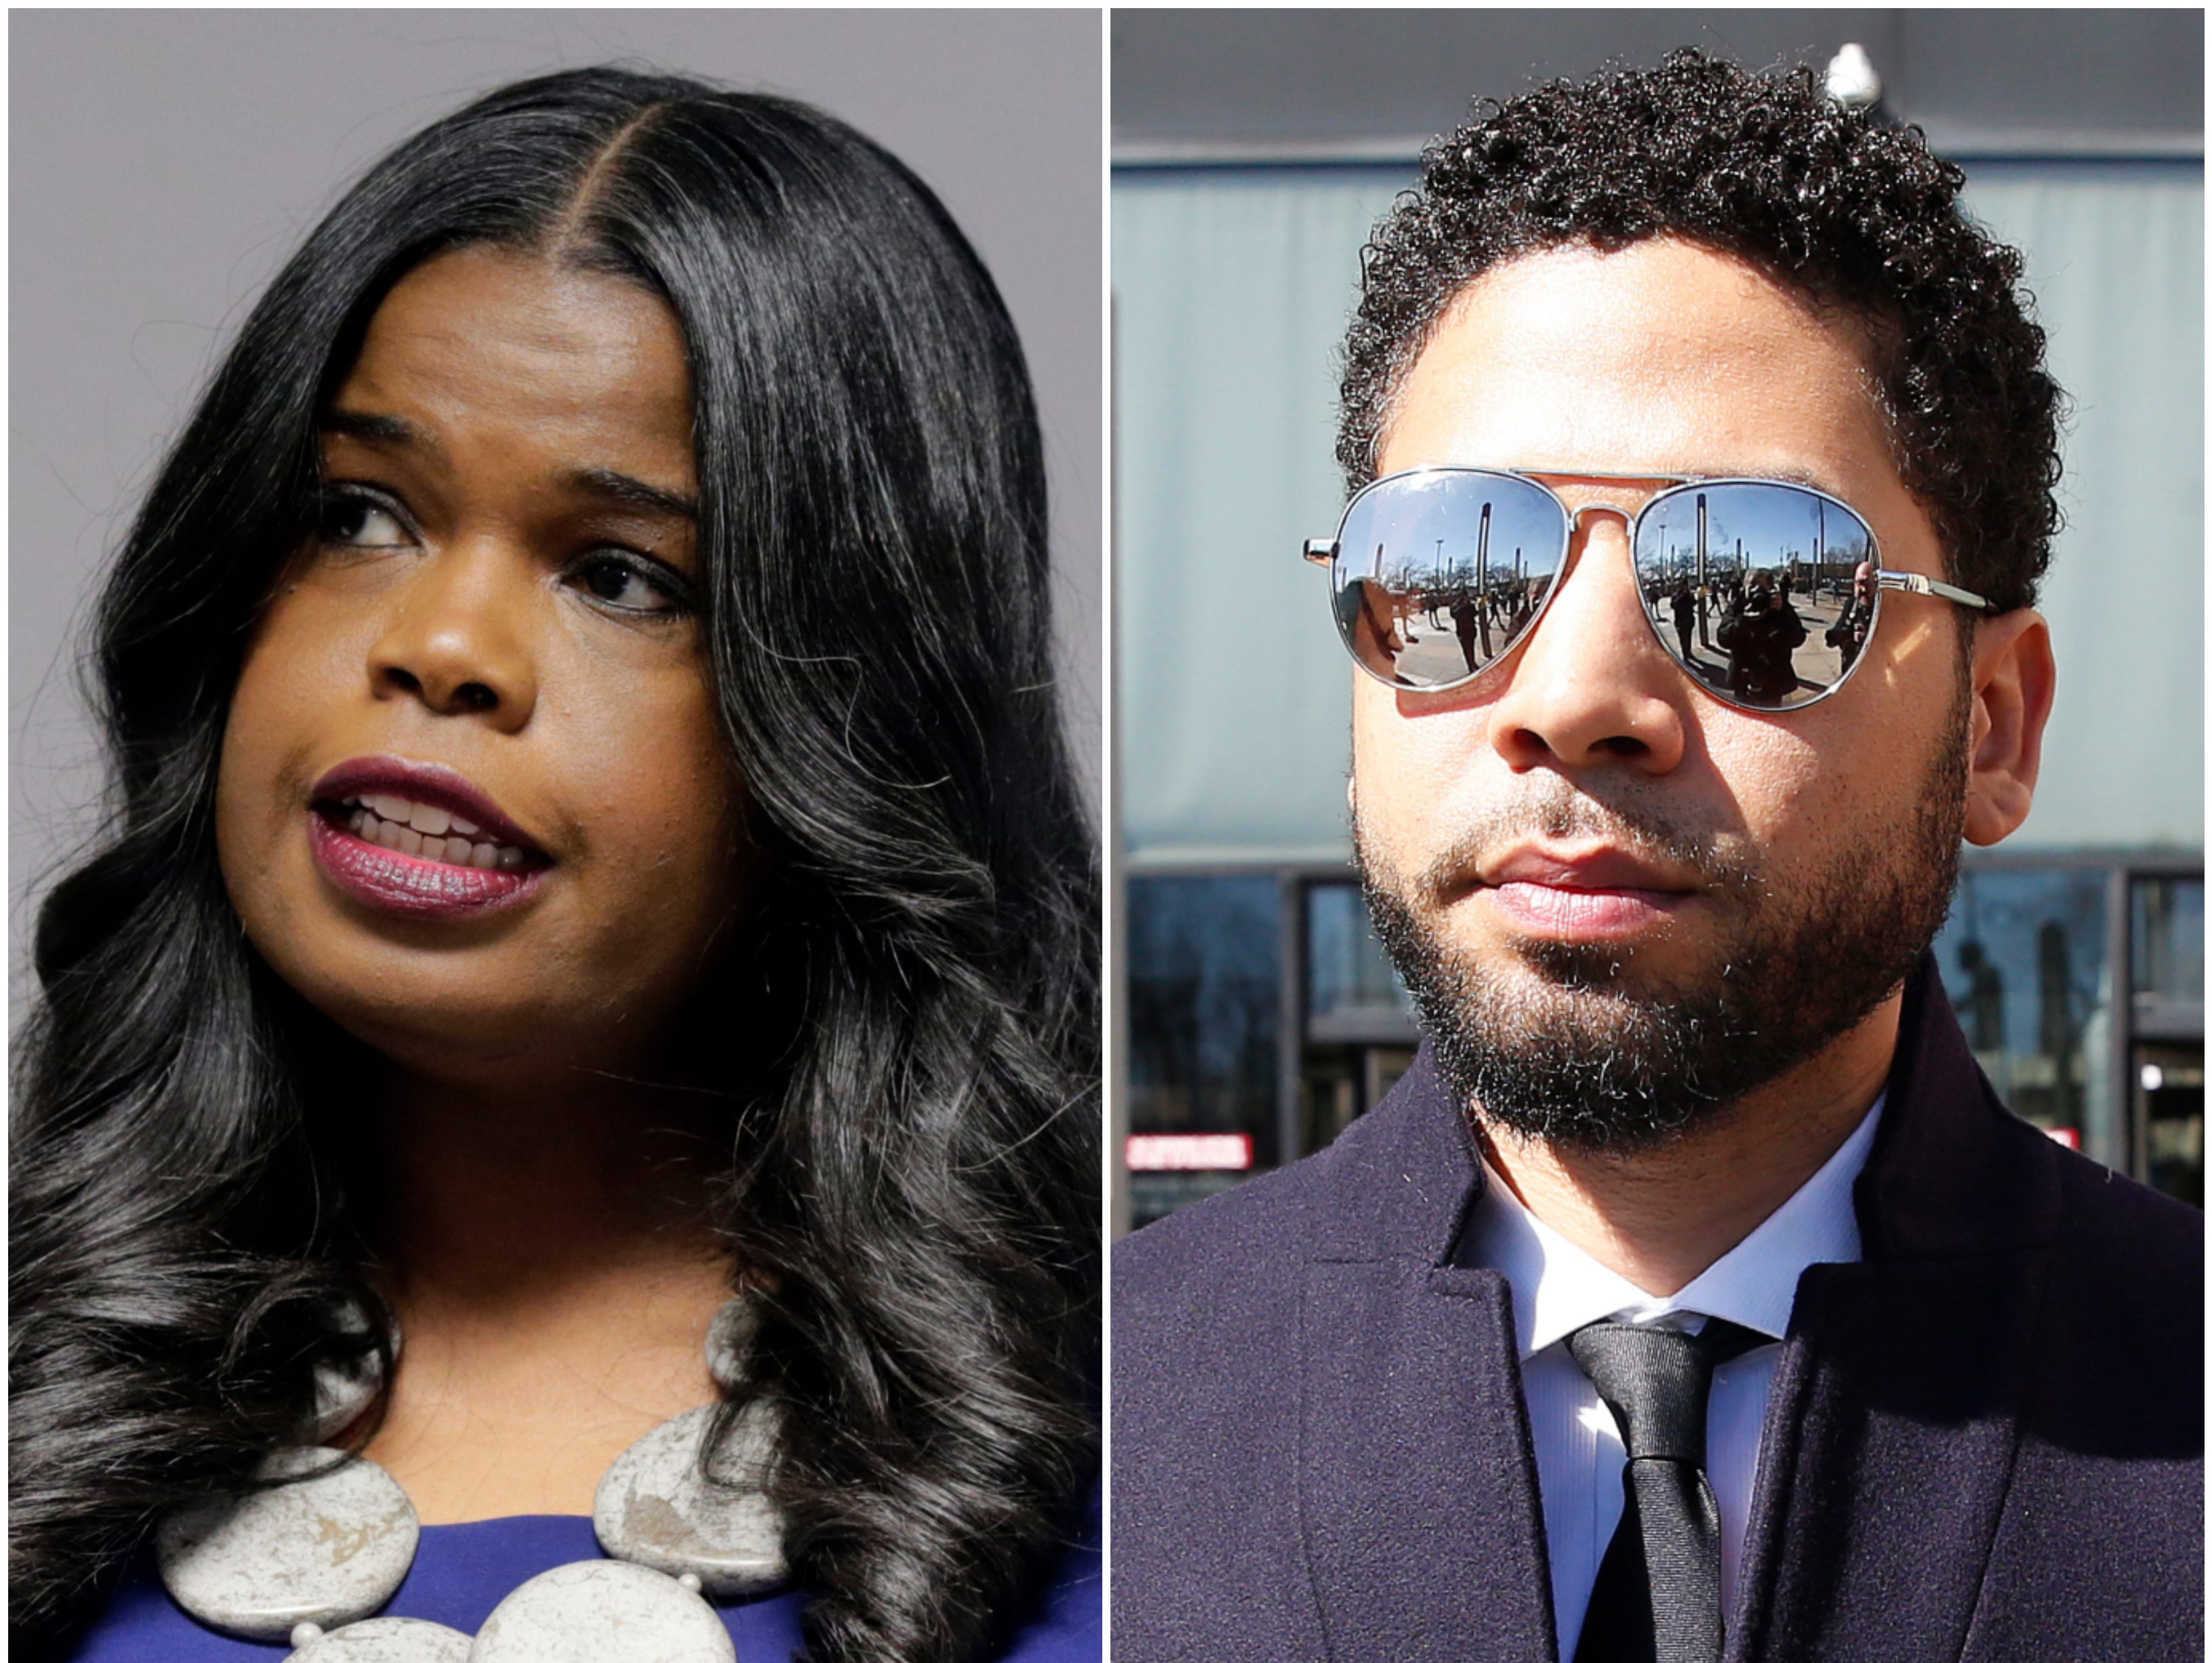 Jussie Smollett fallout: Police union, activists hold dueling protests over Kim Foxx conduct